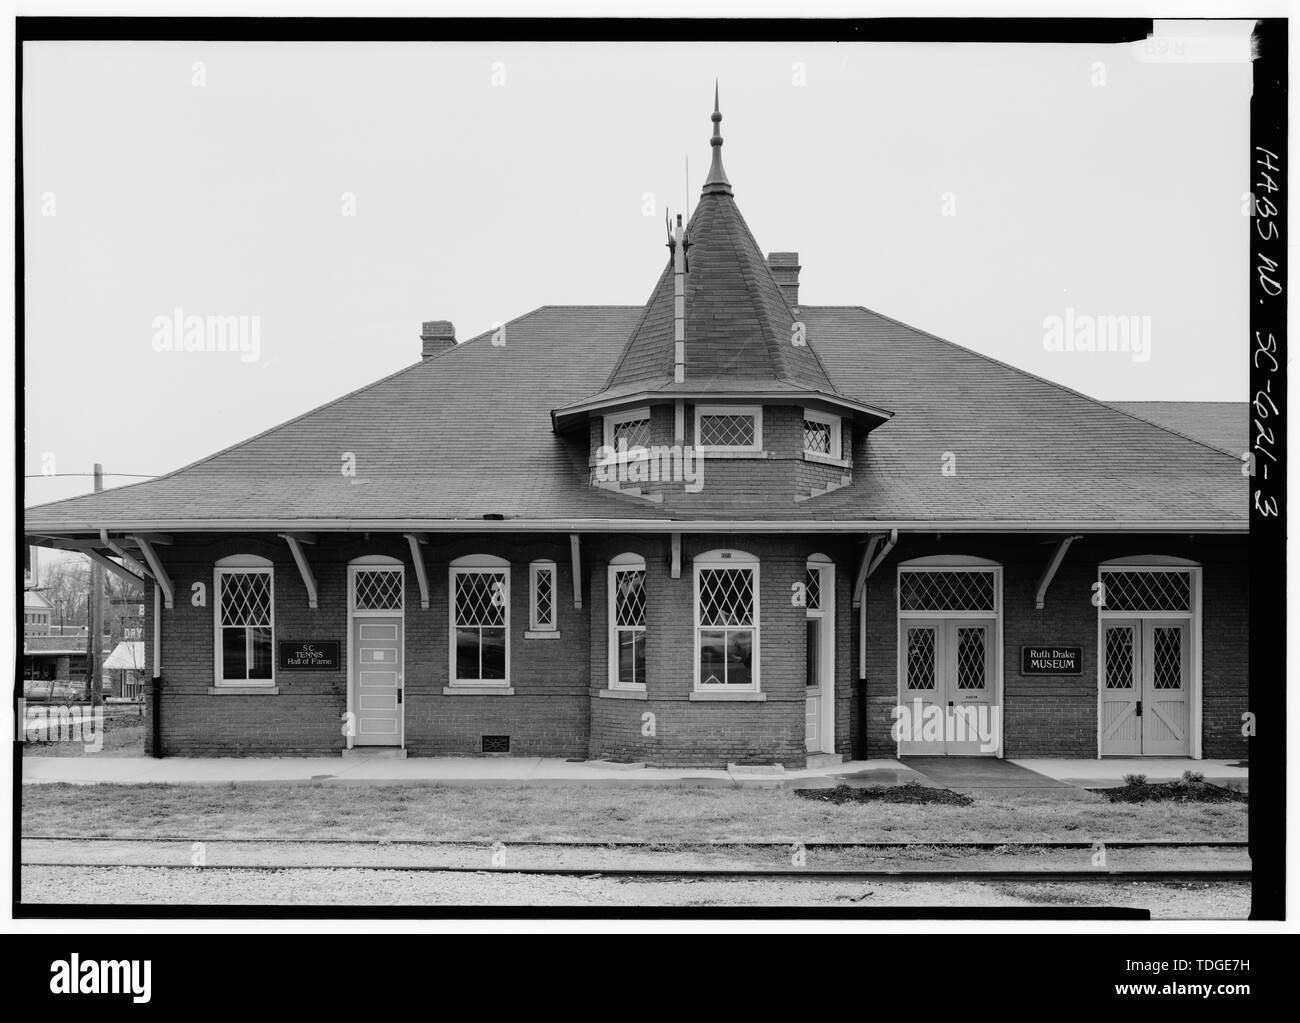 NORTHEAST ELEVATION, EAST END - Southern Railway Combined Depot, West side of Belton Public Square, Belton, Anderson County, SC; Cary, Brian, transmitter - Stock Image